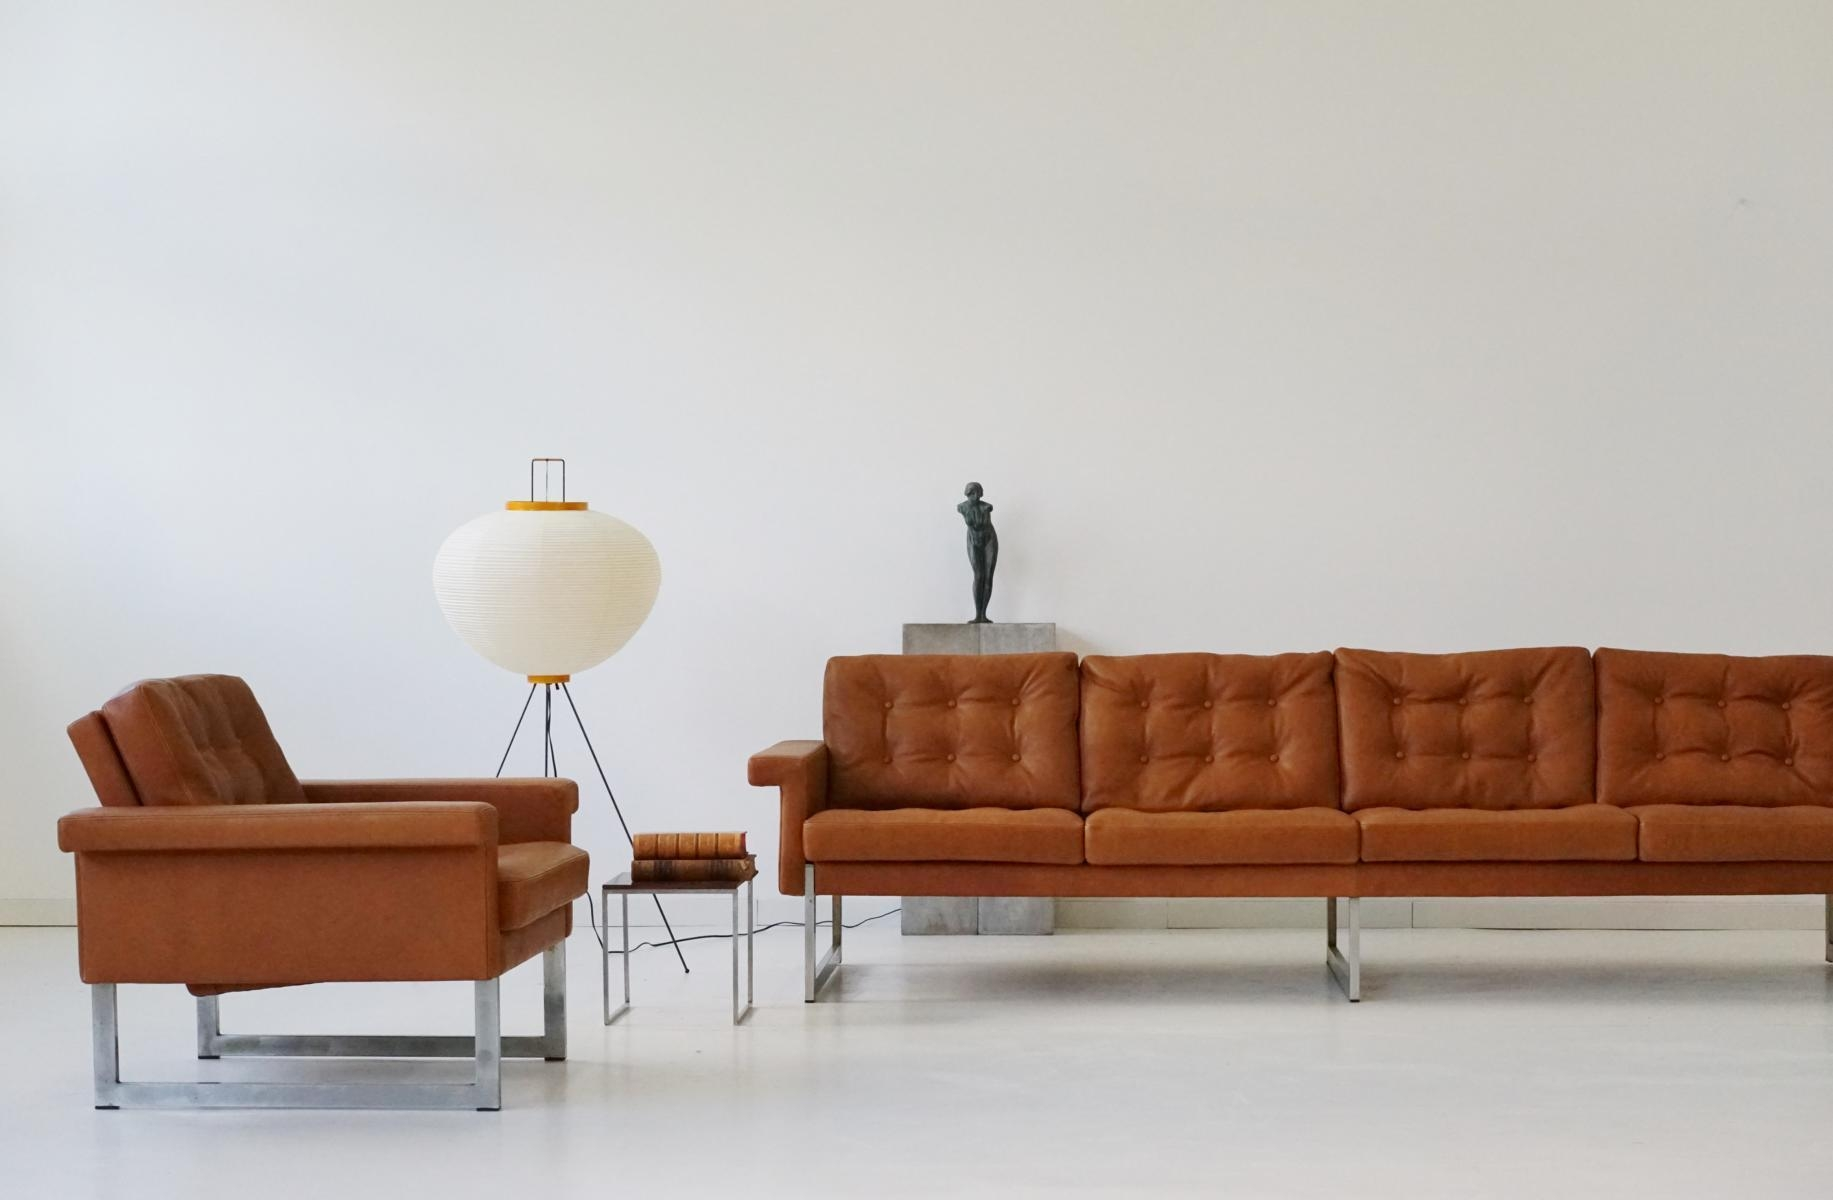 Four Seater Sofa & Lounge Chairs From Kill International, 1967 For Within Four Seat Sofas (Image 14 of 20)